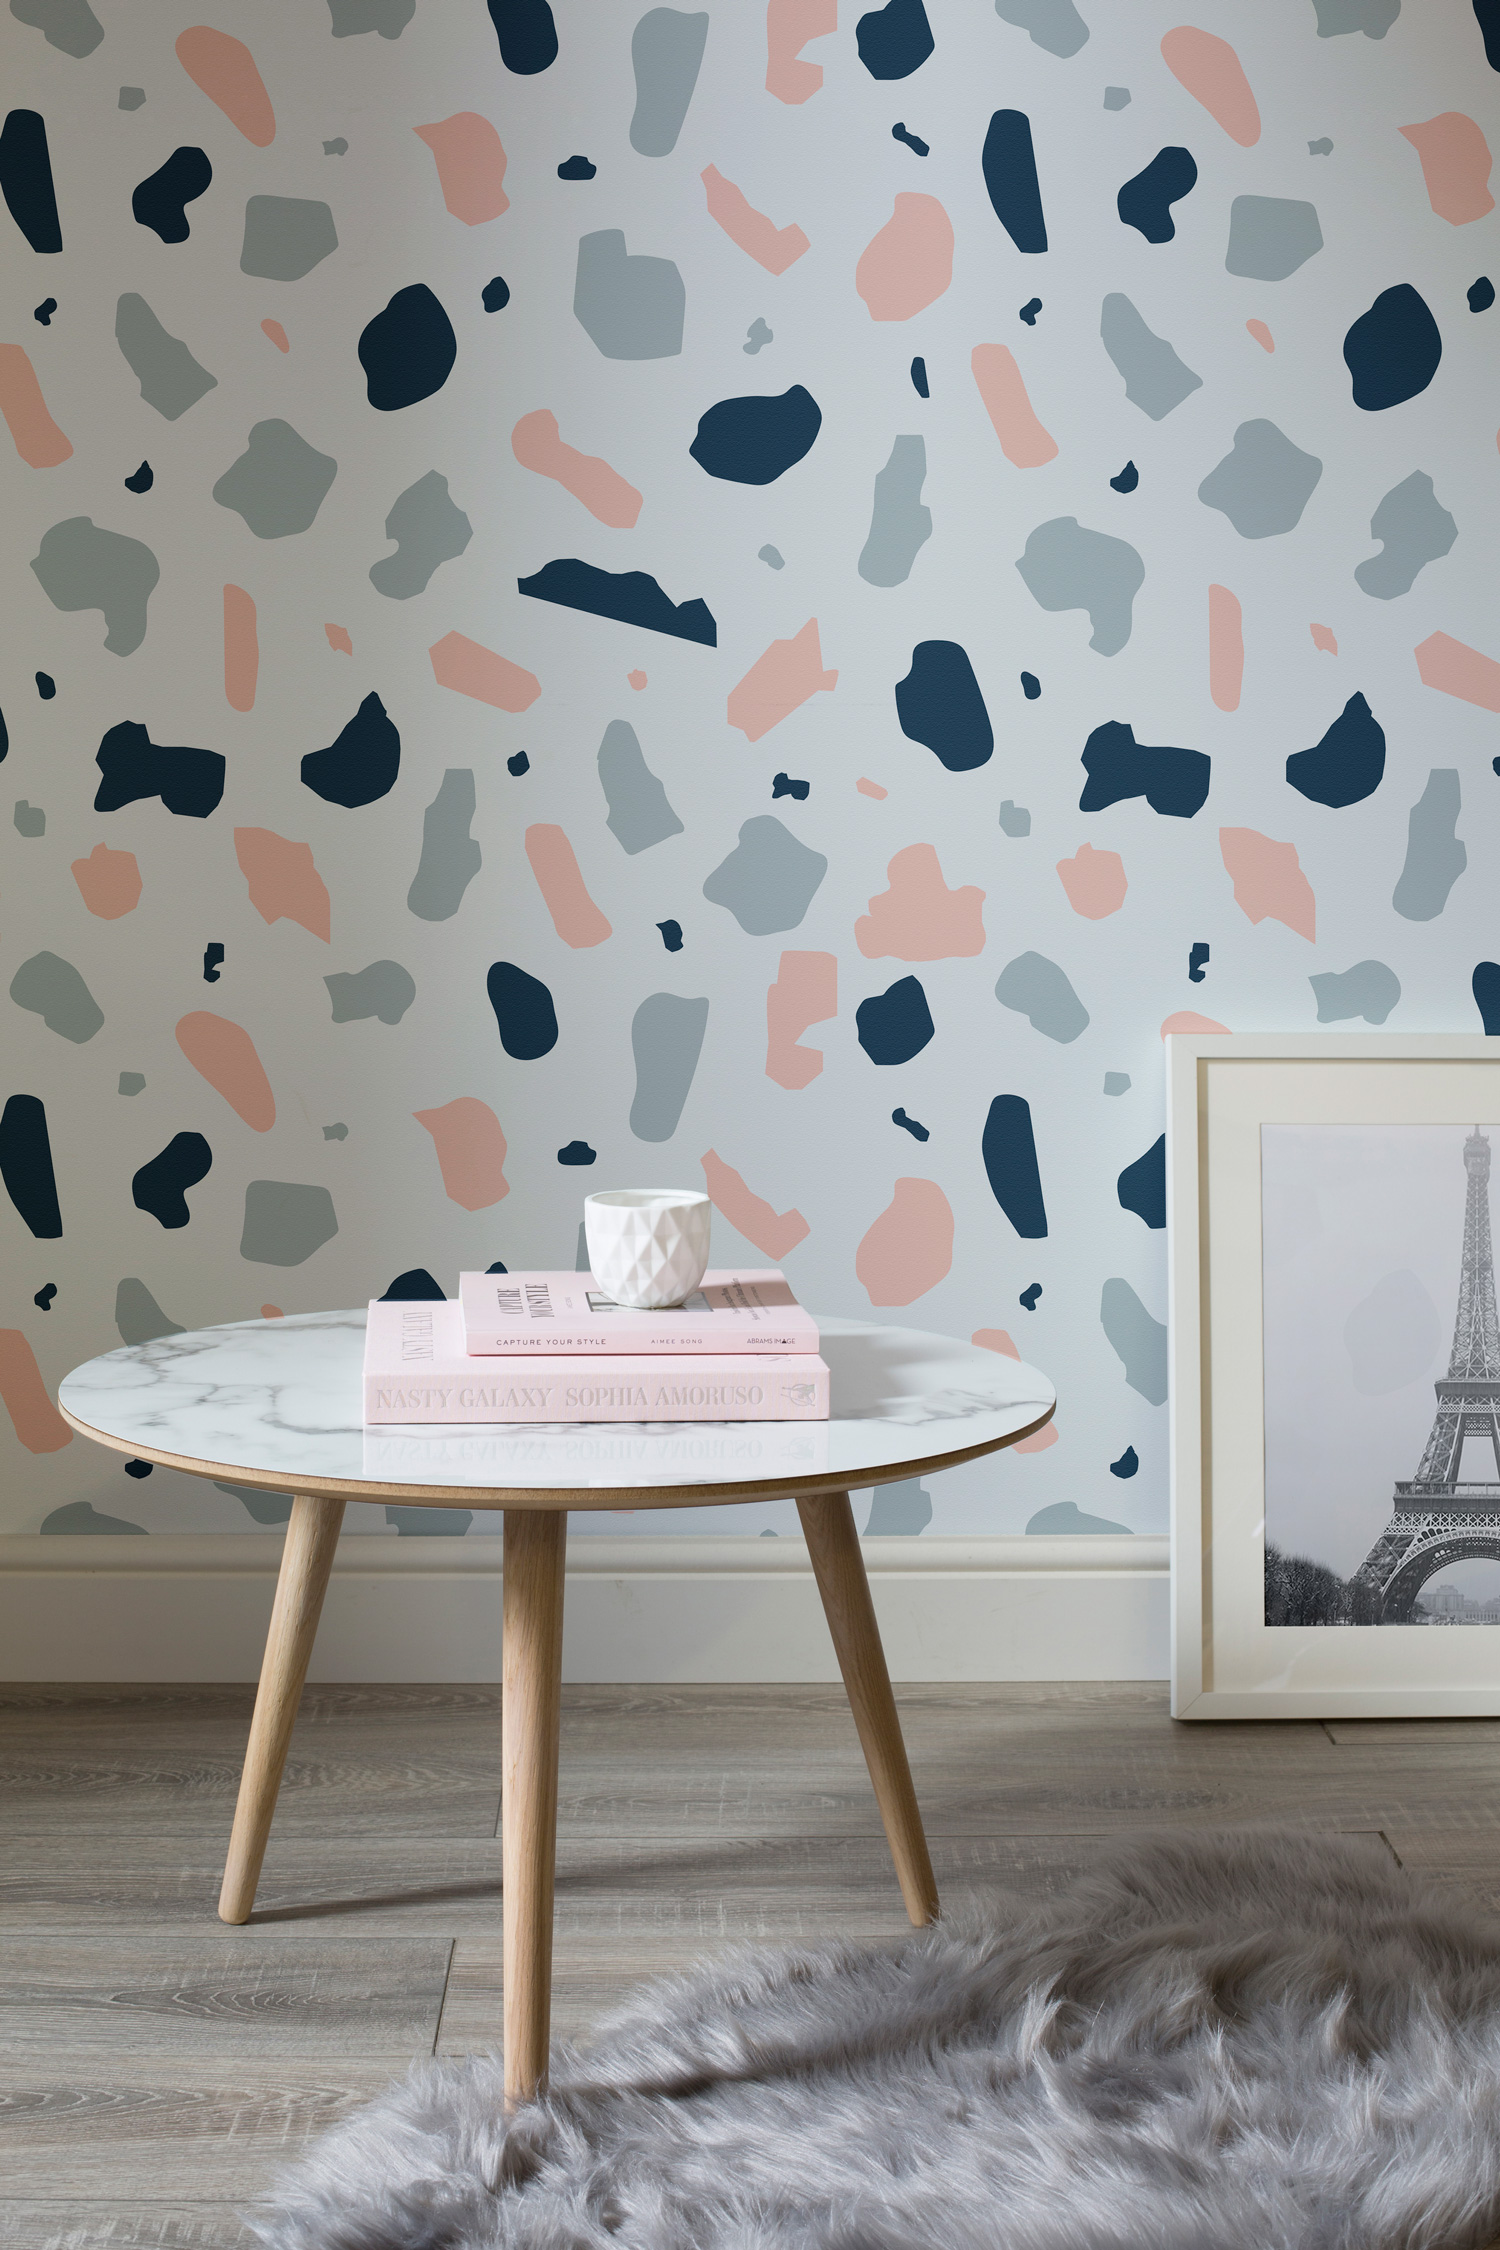 Terrazzo Is The New Marble And Designers Are Going Crazy